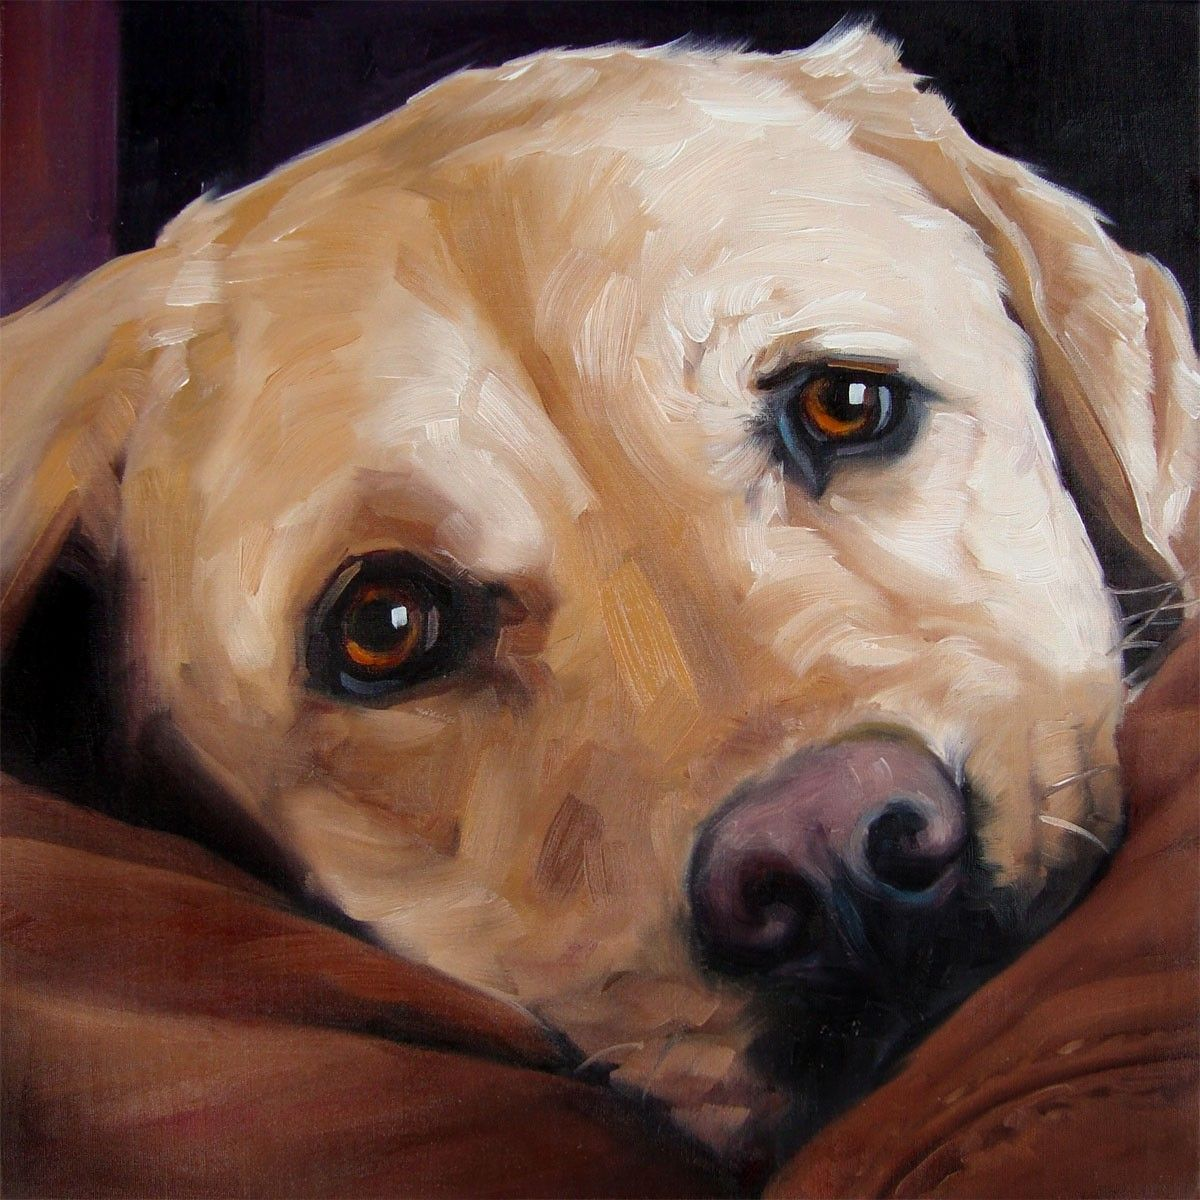 Pet Portrait Oil Painting. I like the brush strokes and